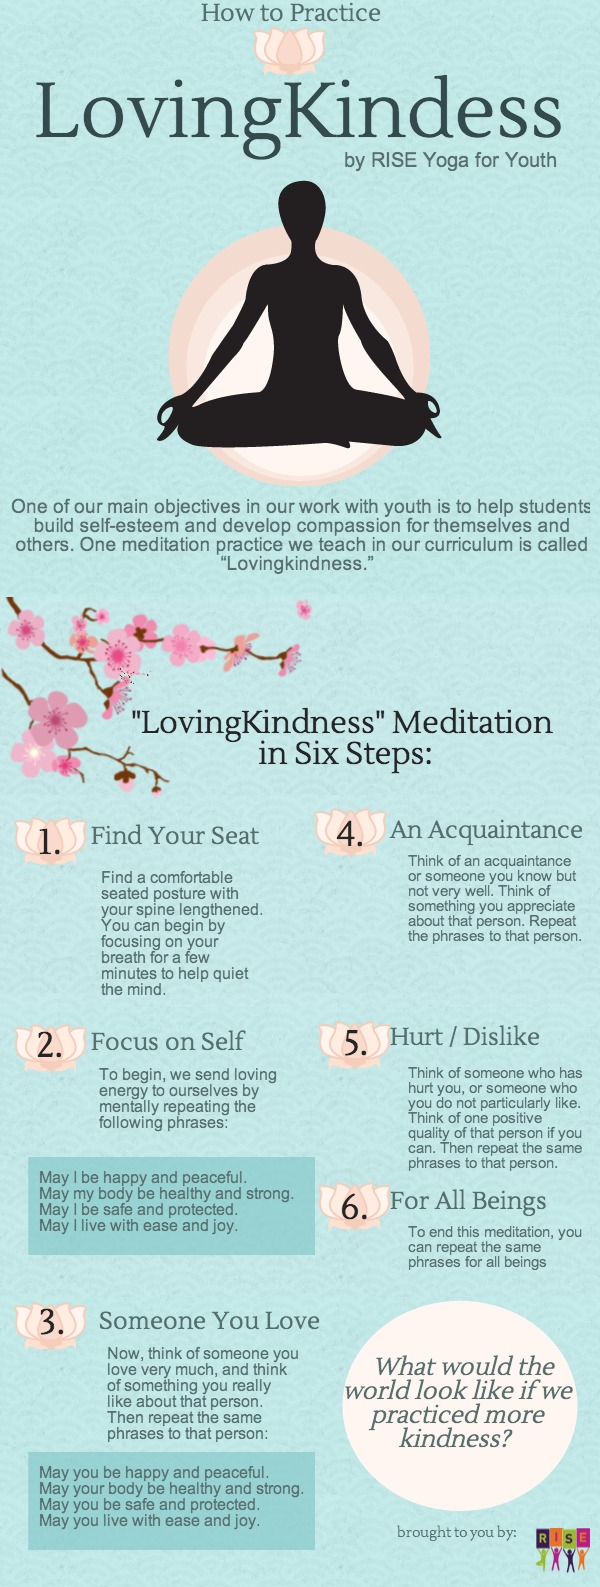 LovingKindness Meditation from RISE Yoga for Youth